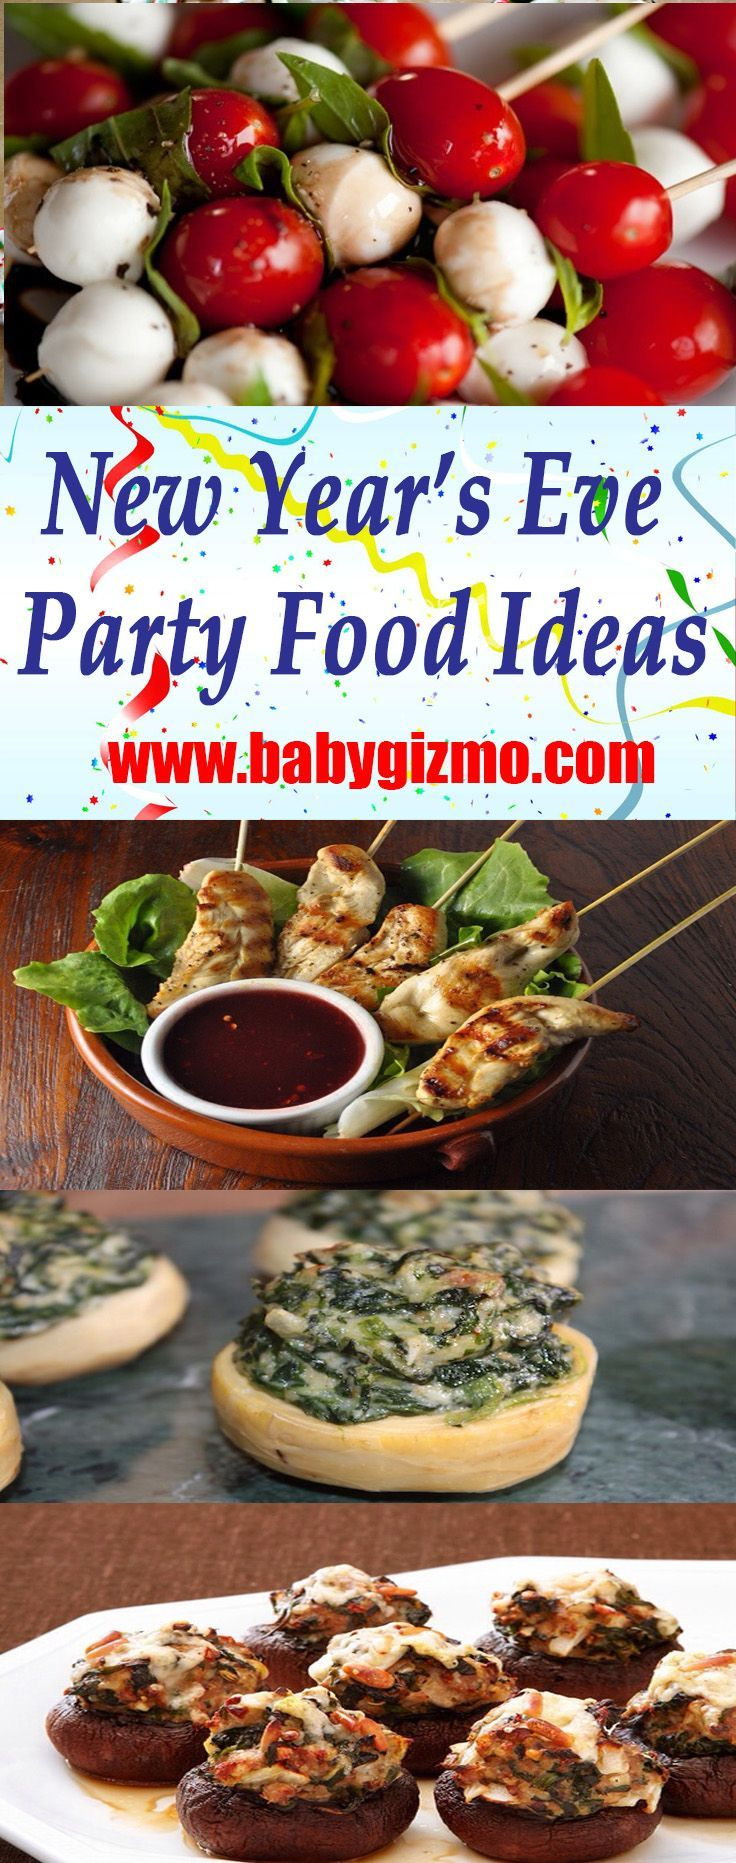 Fabulous Finger Foods For New Year's Eve Parties | Baby Gizmo